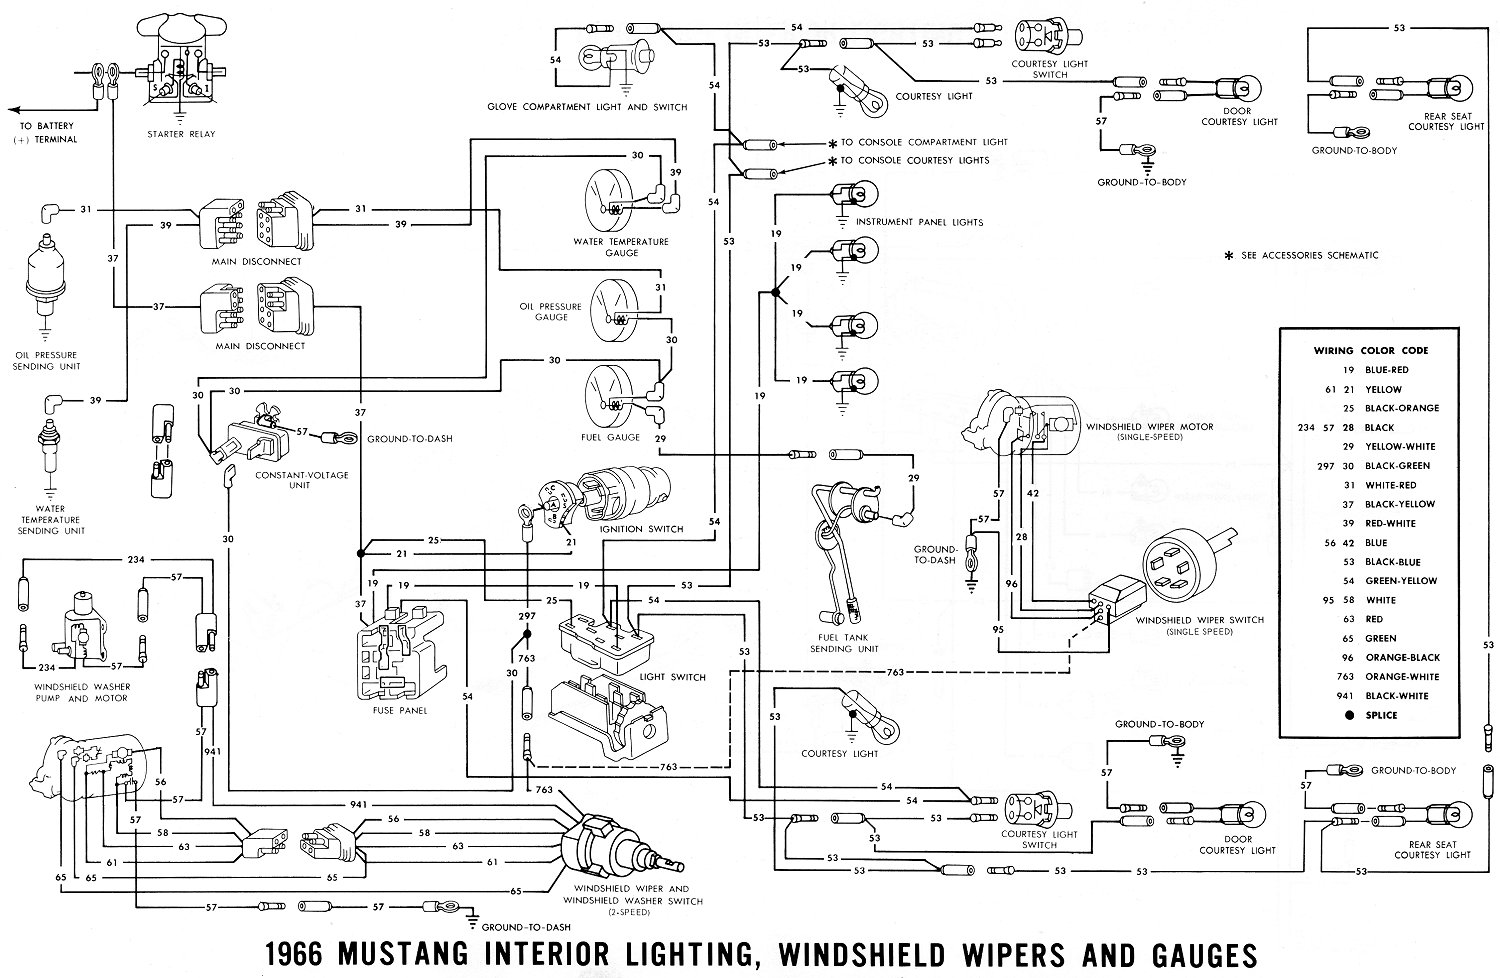 hight resolution of 1966 mustang wiring harness diagram wiring diagram third level 1969 mustang wiring harness 1966 mustang wiring